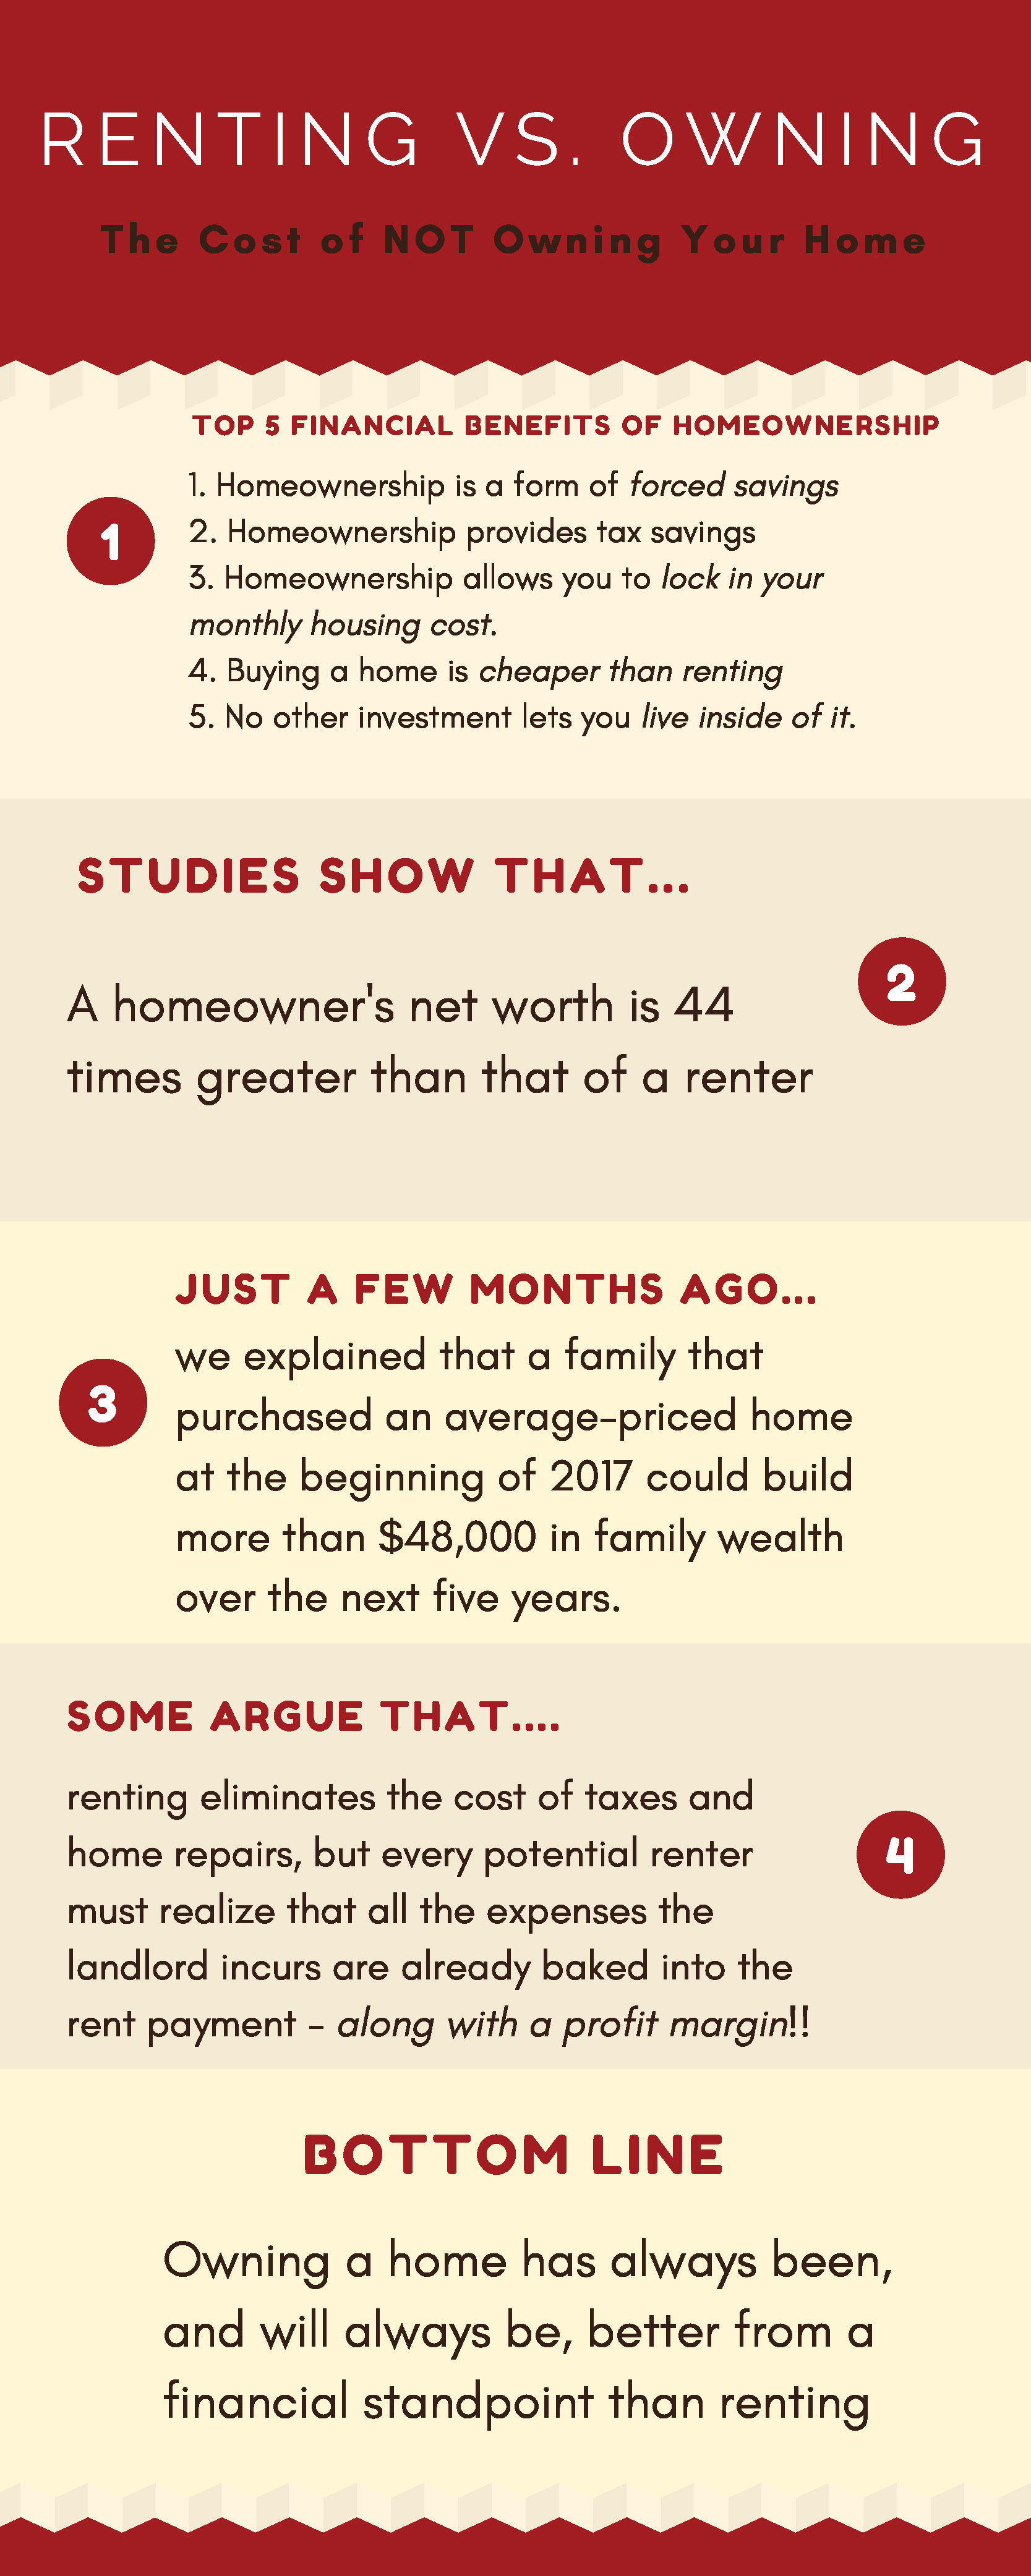 Renting vs. Owning - The Cost of NOT Owning Your Home